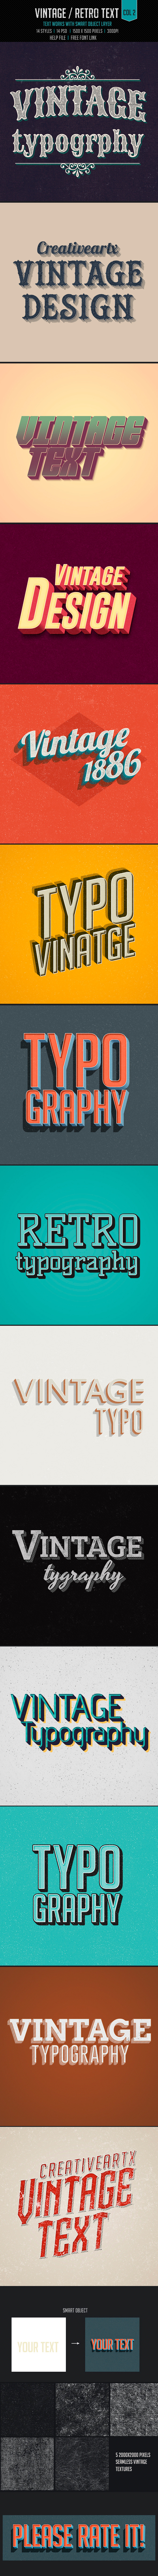 Vintage/Retro Text Col2 - Text Effects Actions